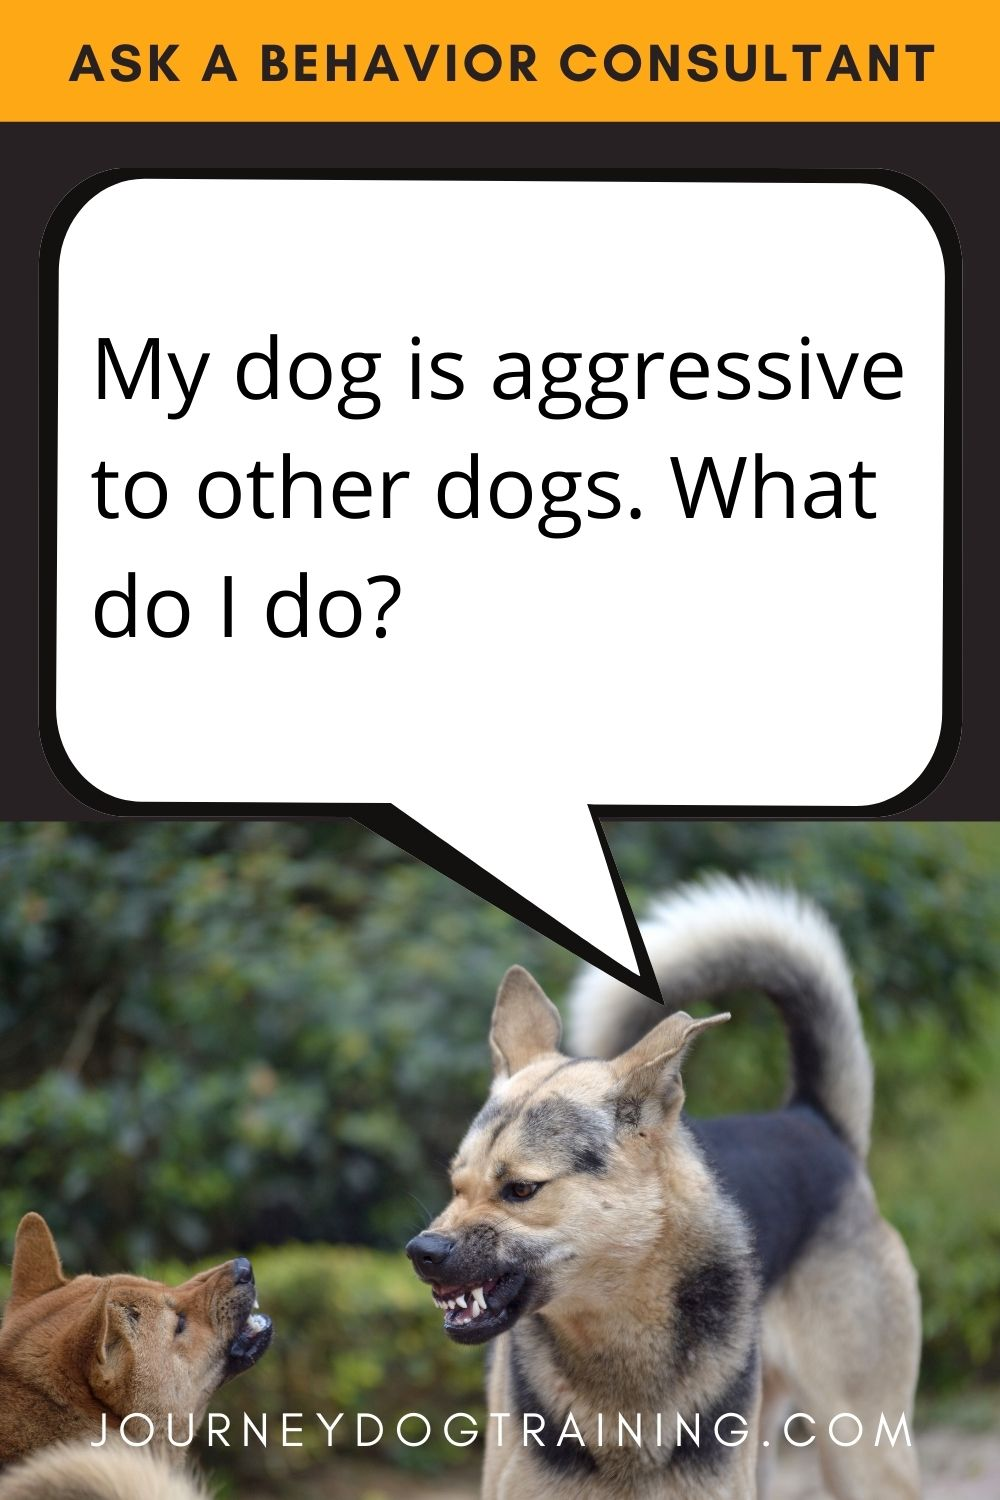 journey dog training | My dog is aggressive to other dogs. What should i do? | journeydogtraining.com